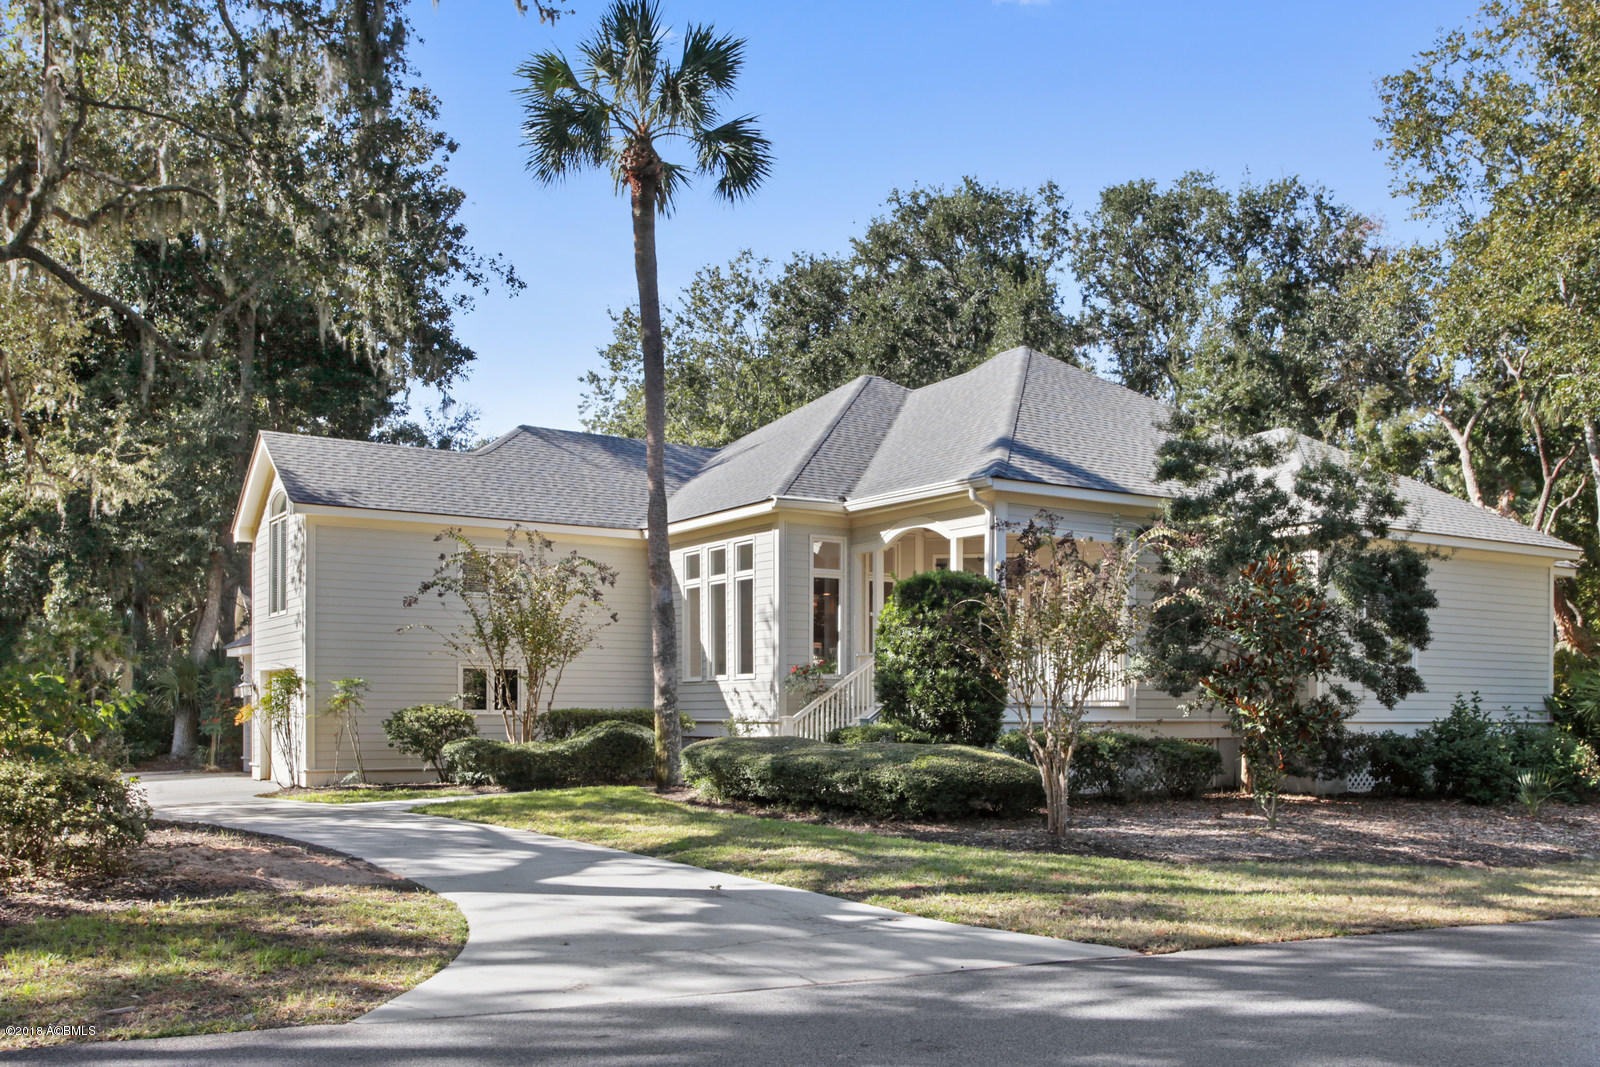 Photo of 2 Cottage Court, Hilton Head Island, SC 29928